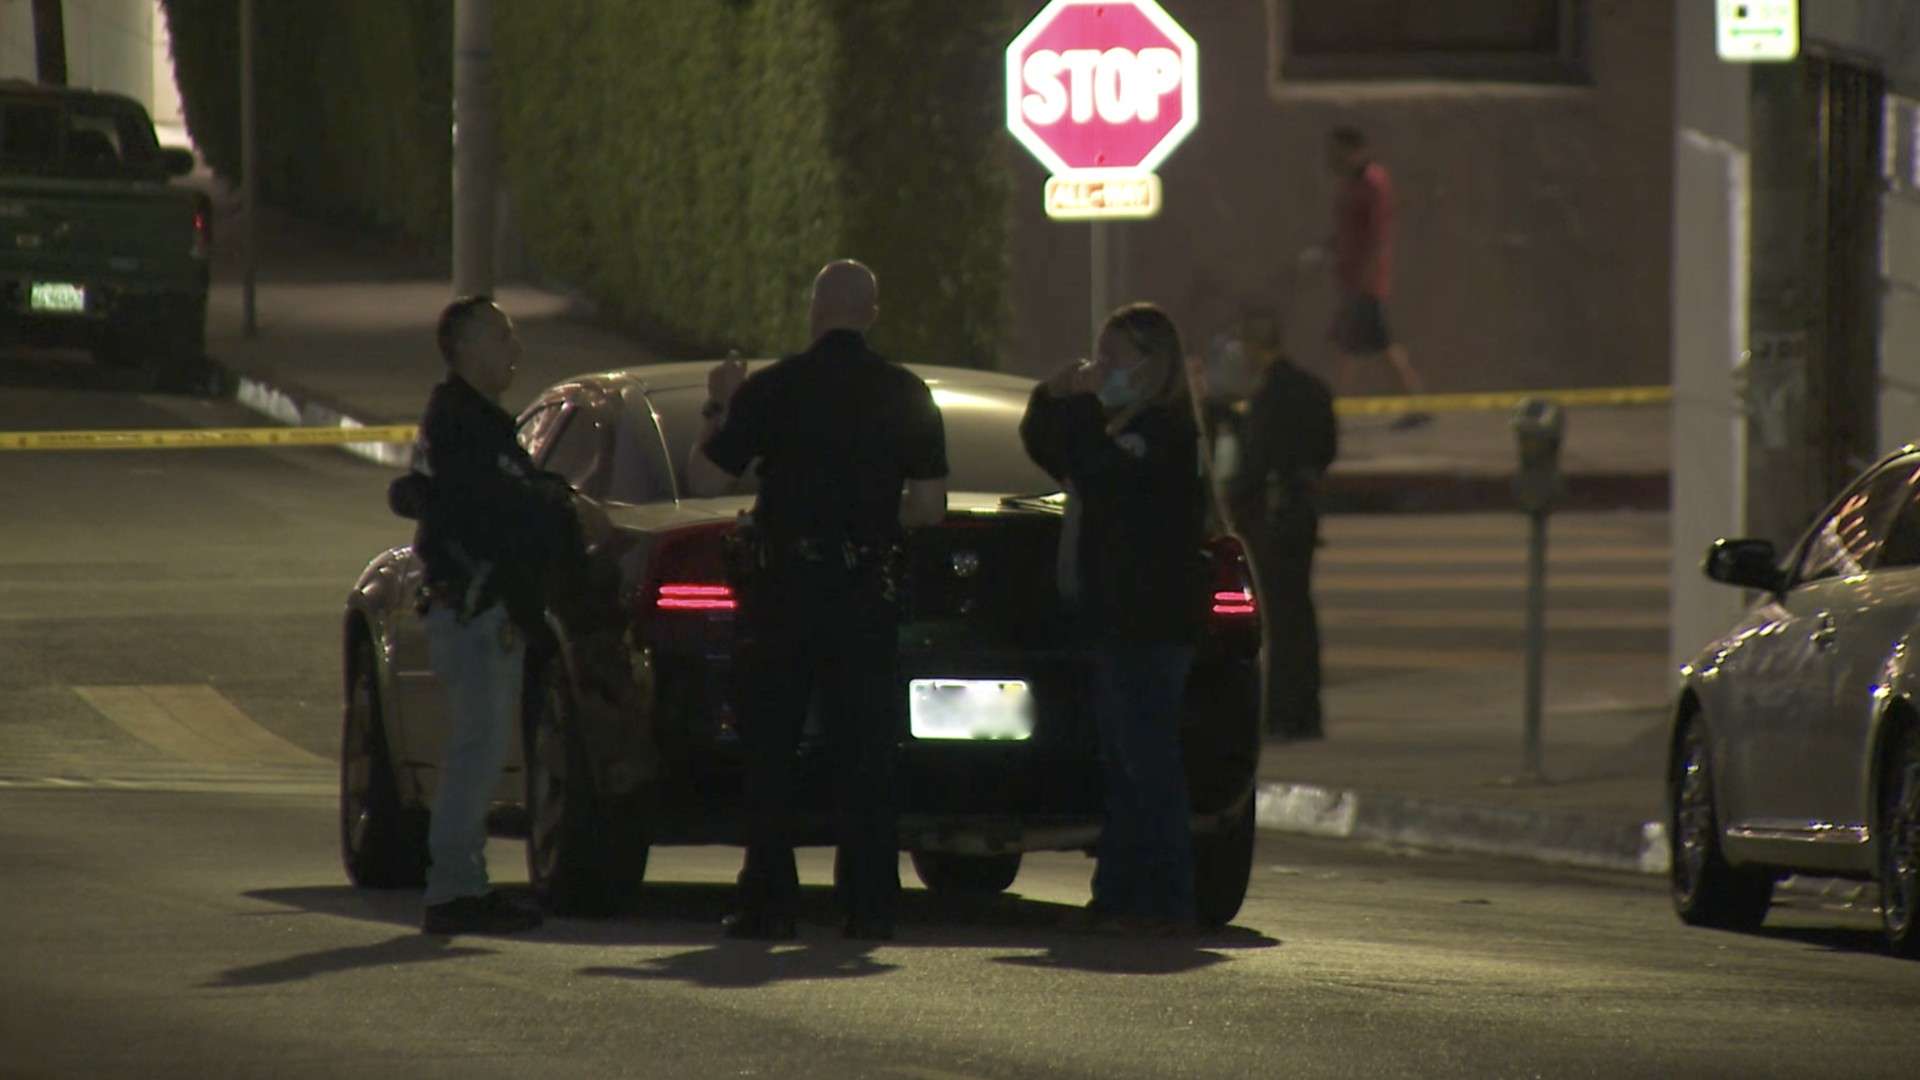 Police investigate a shooting in the Westlake neighborhood on Sept. 21, 2020. (KTLA)